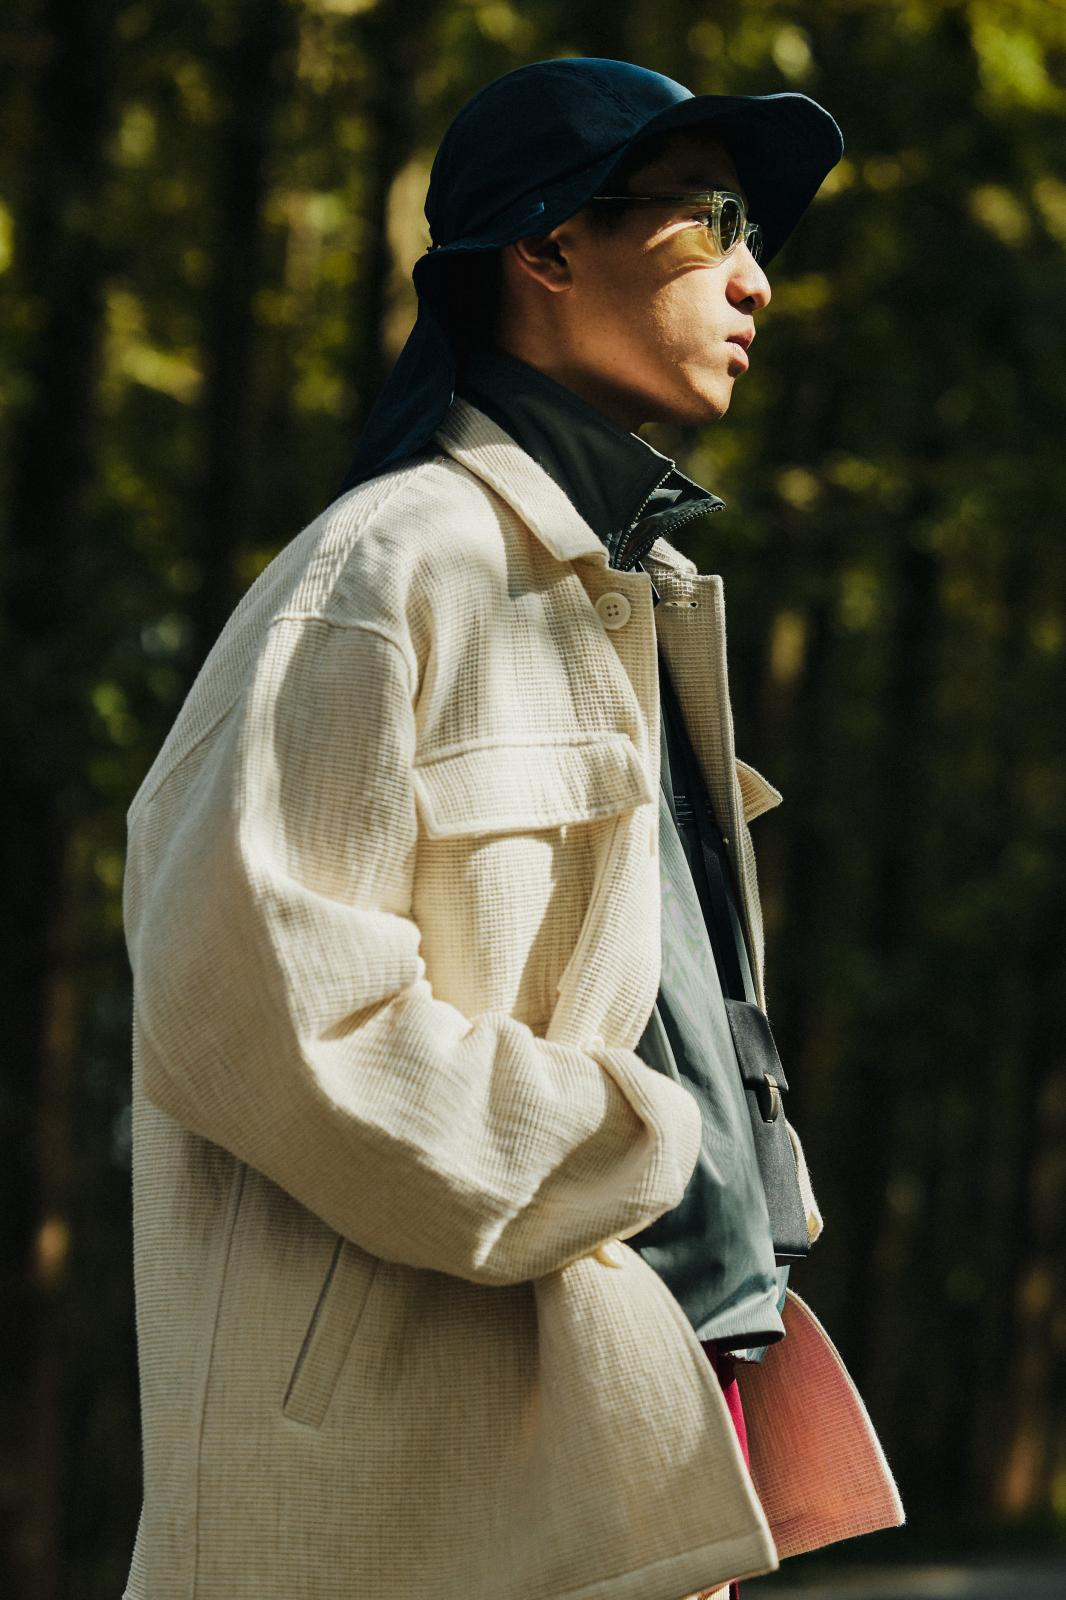 ROARINGWILD 20AW Editorial 型录特辑发布